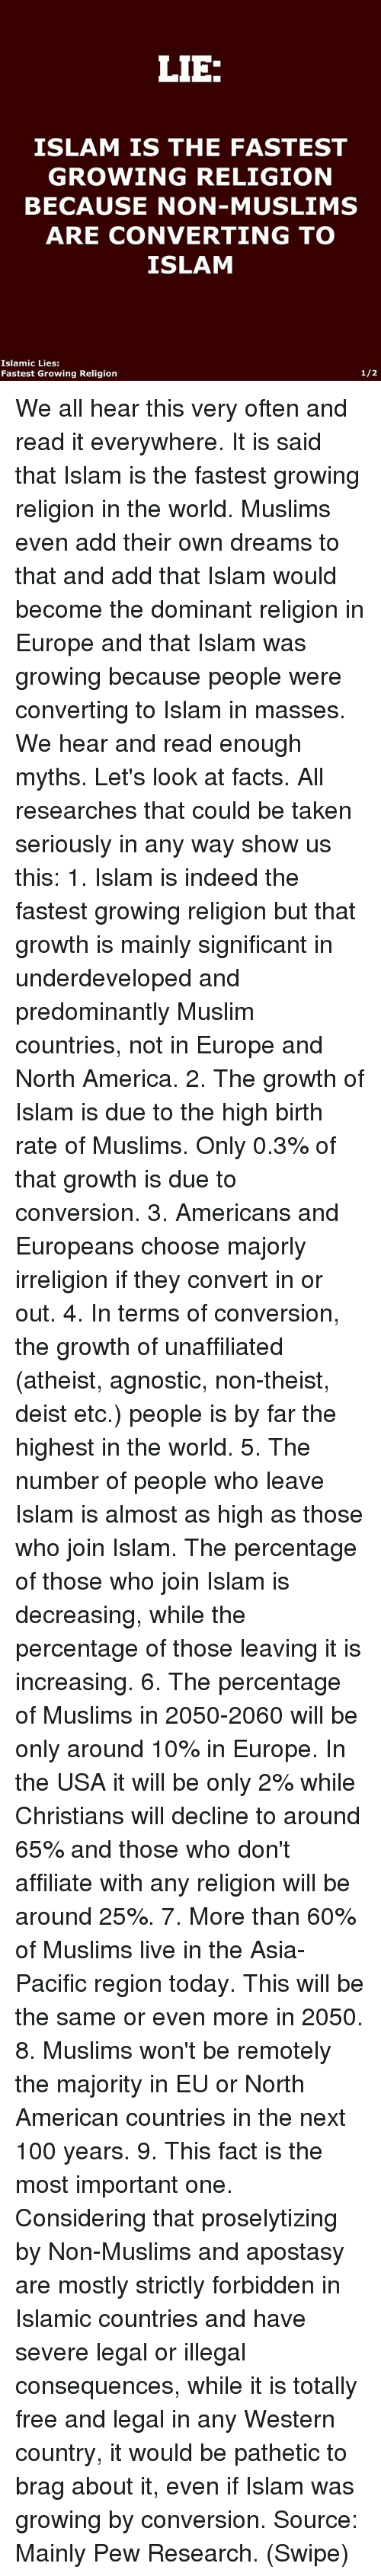 LIE ISLAM IS THE FASTEST GROWING RELIGION BECAUSE NONMUSLIMS ARE - The fastest growing religion